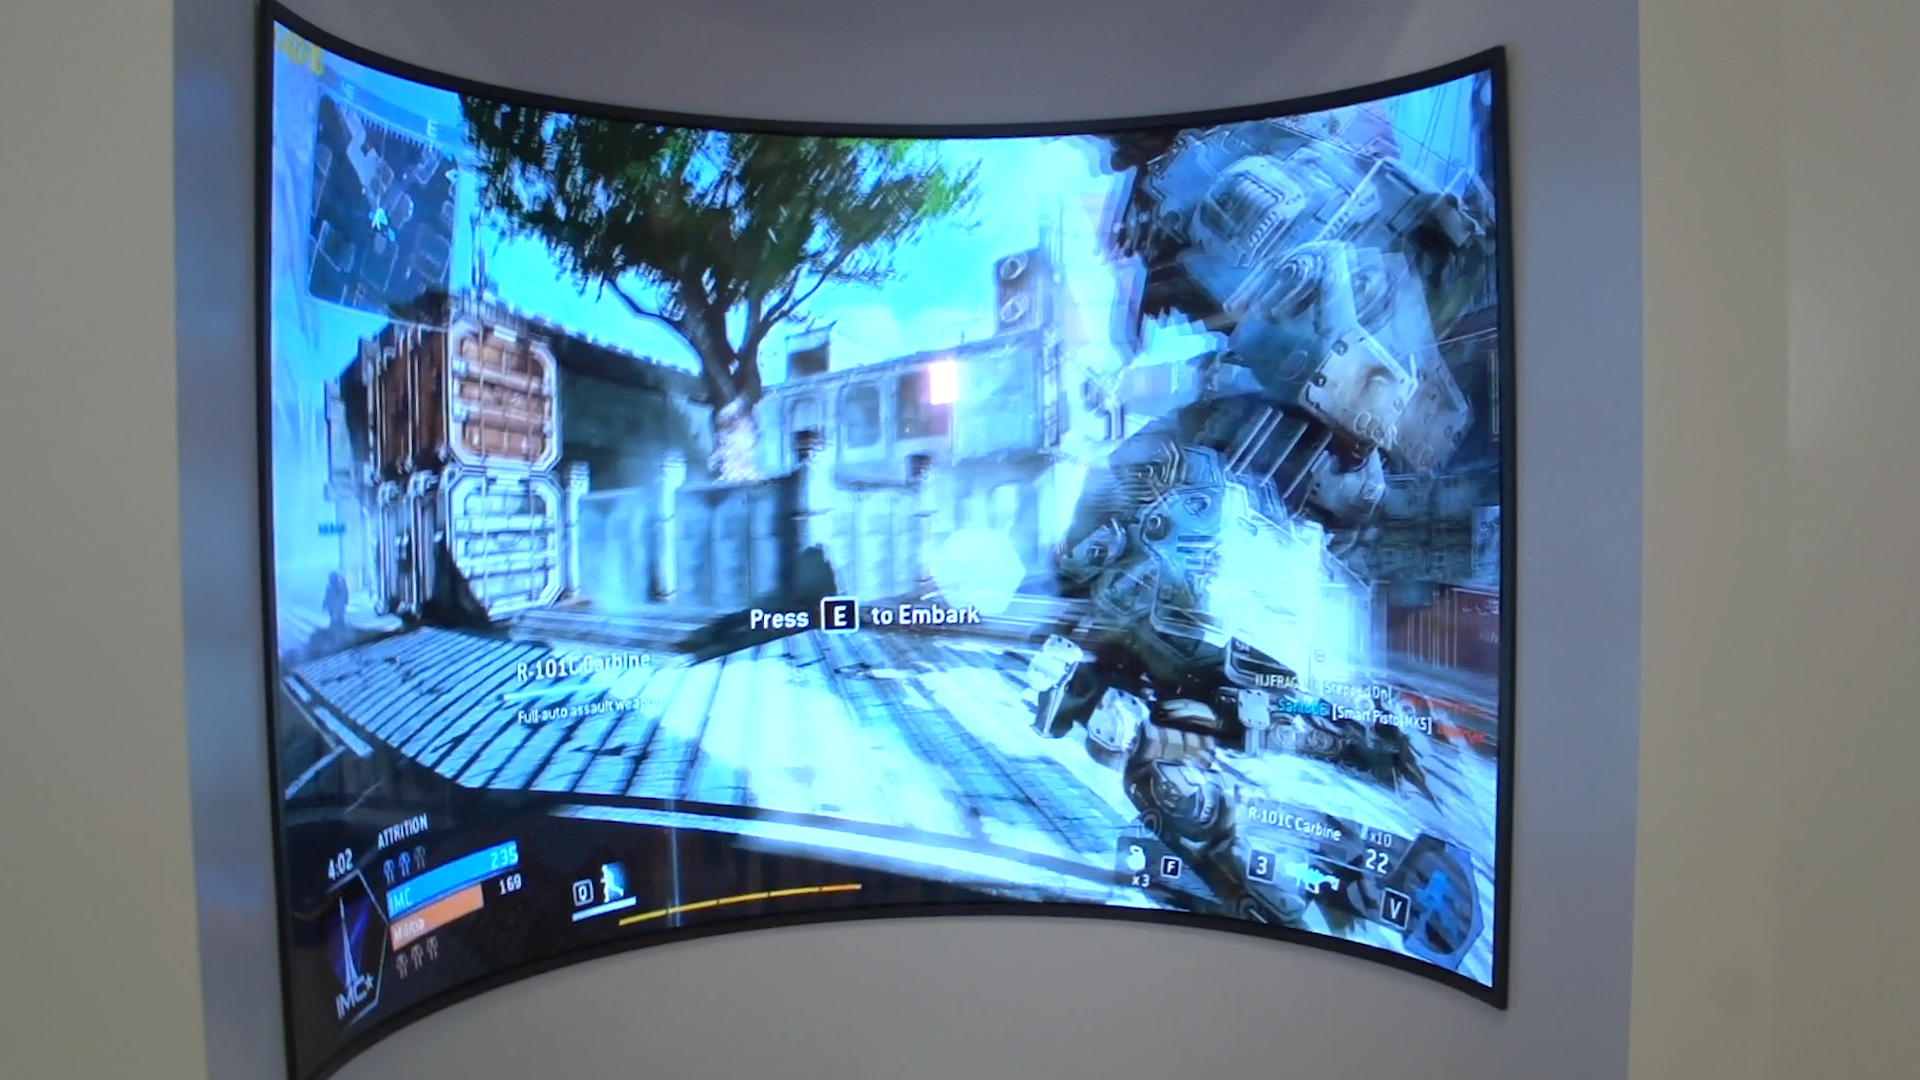 Video: LG Display bends reality with hyper-curved concave OLED